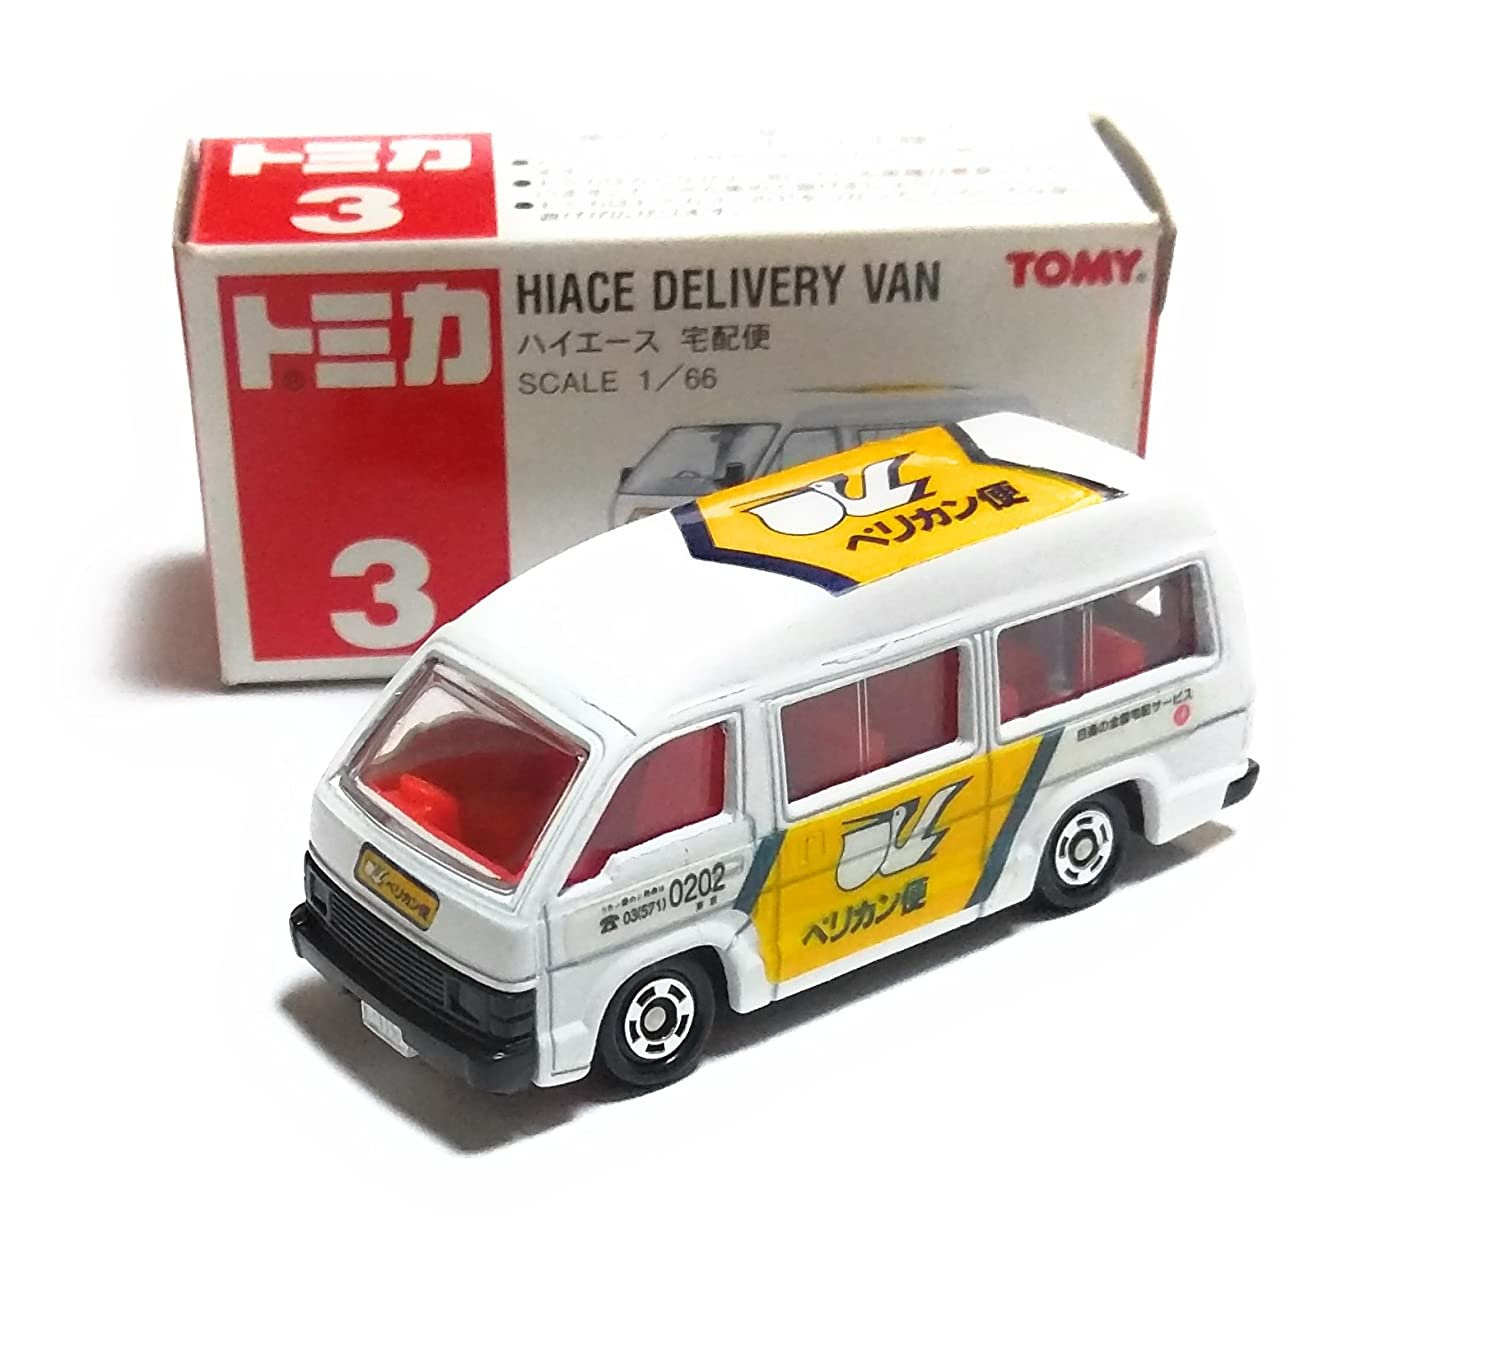 Tomica red box 3 Hiace courier Pelican 1//66 red TOMY logo Miniature Car